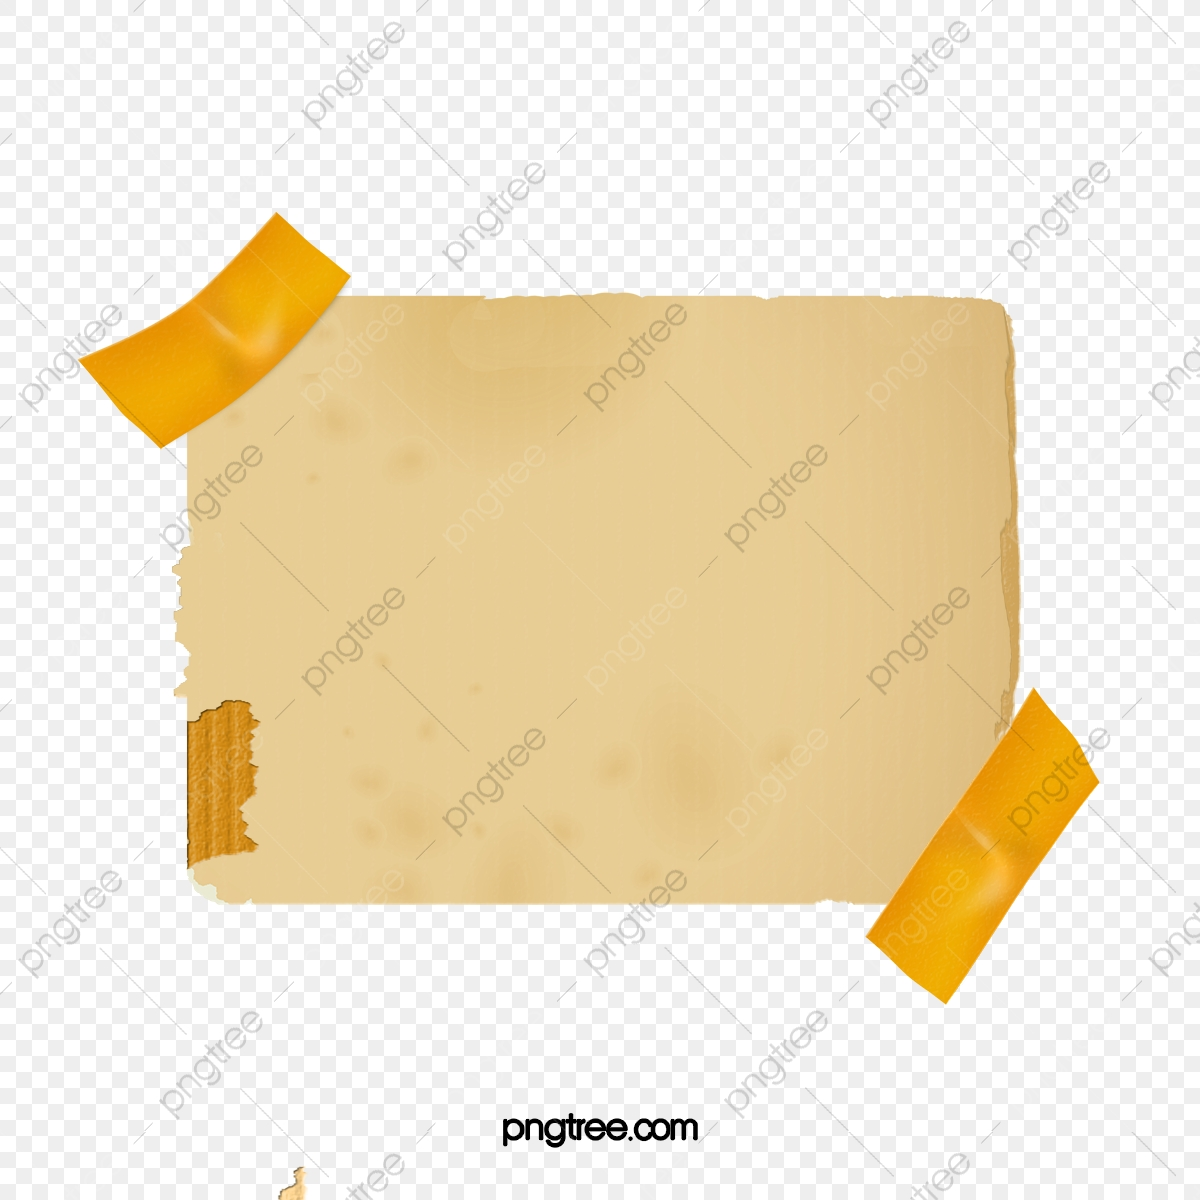 Taped note. Tape notes paper png